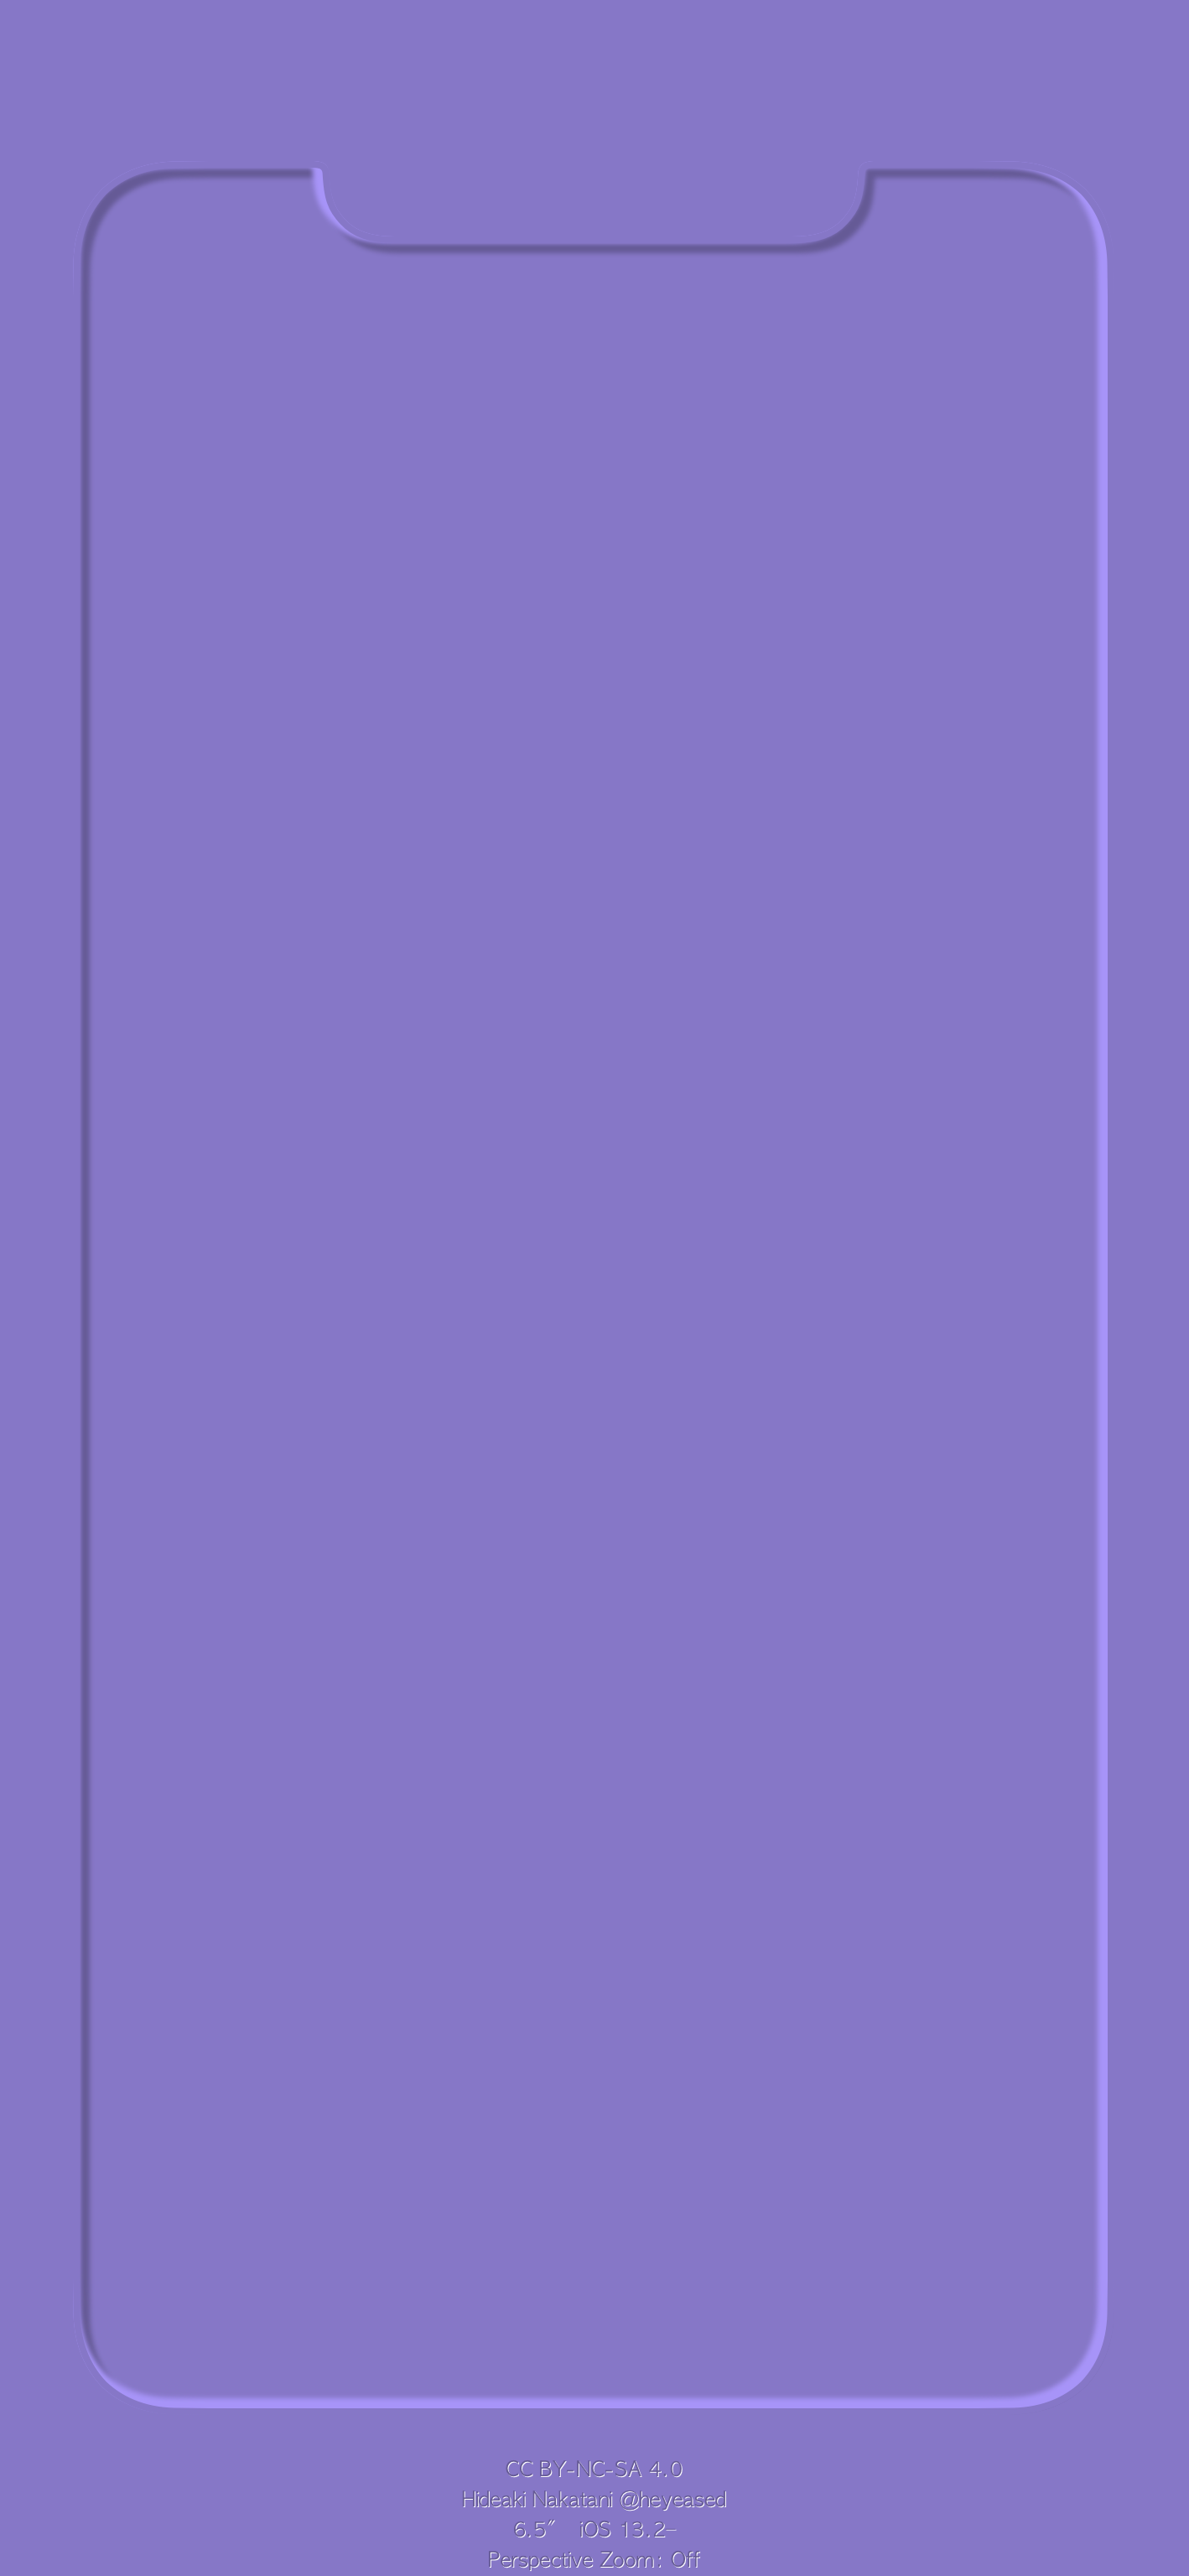 3d border max violet iphone wallpaper heyeased idownloadblog